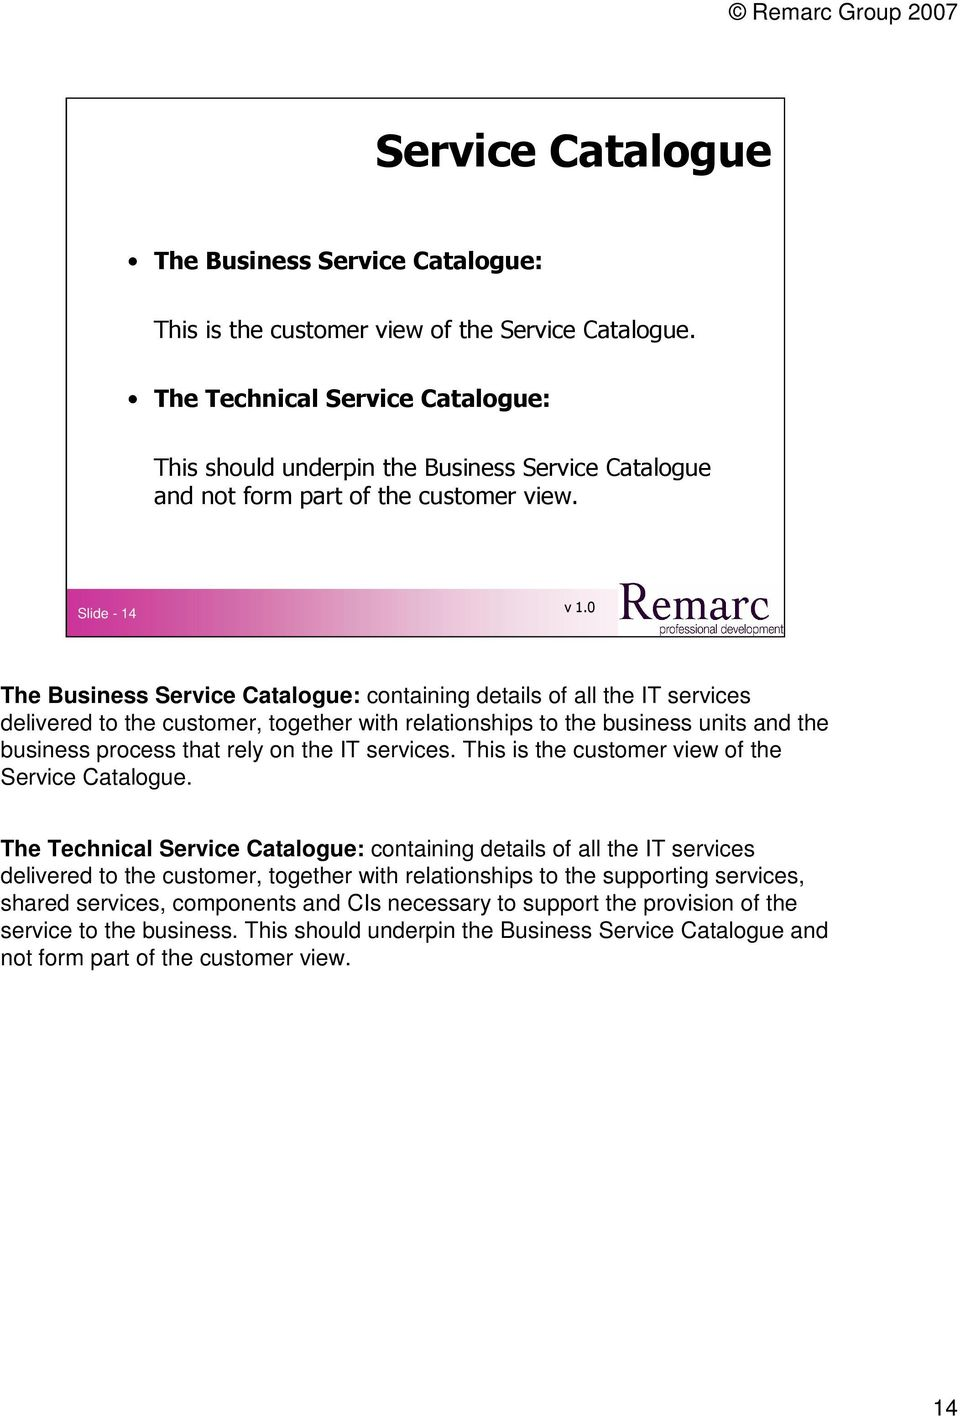 Slide - 14 The Business Service Catalogue: containing details of all the IT services delivered to the customer, together with relationships to the business units and the business process that rely on